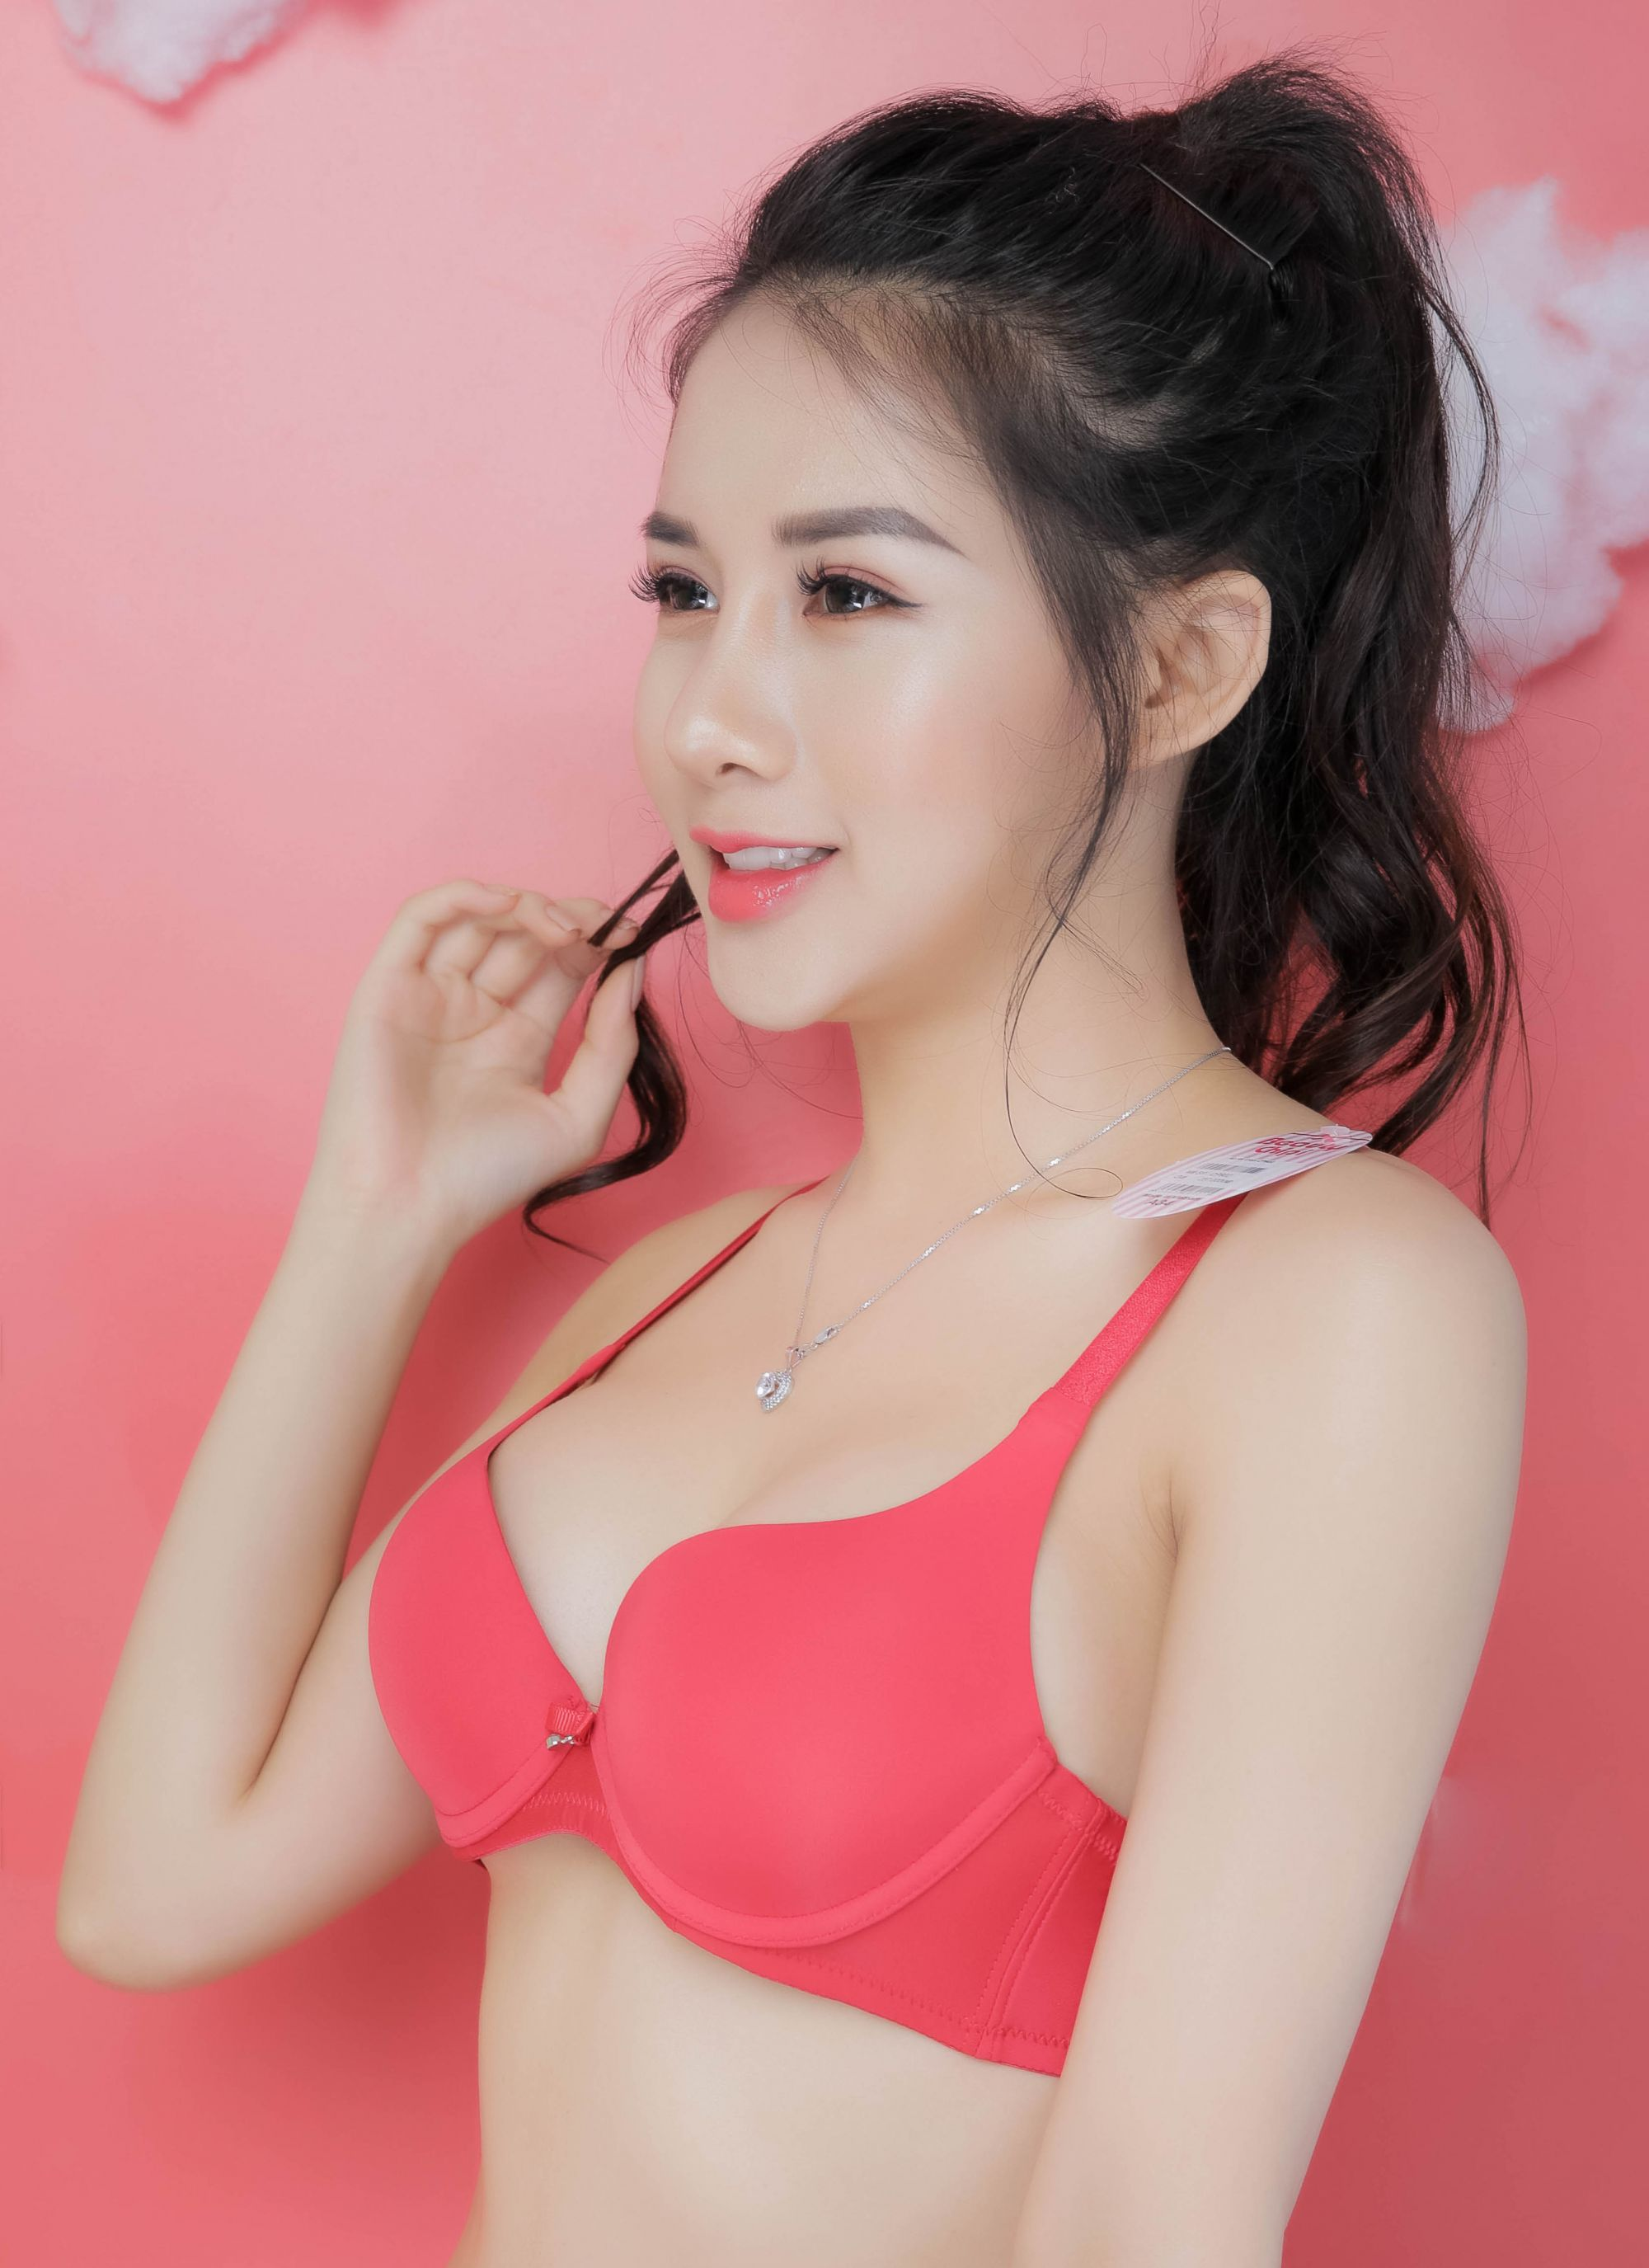 xuong-may-do-lot-dep-beauty-chipi-nhap-buon-gia-cuc-re-4